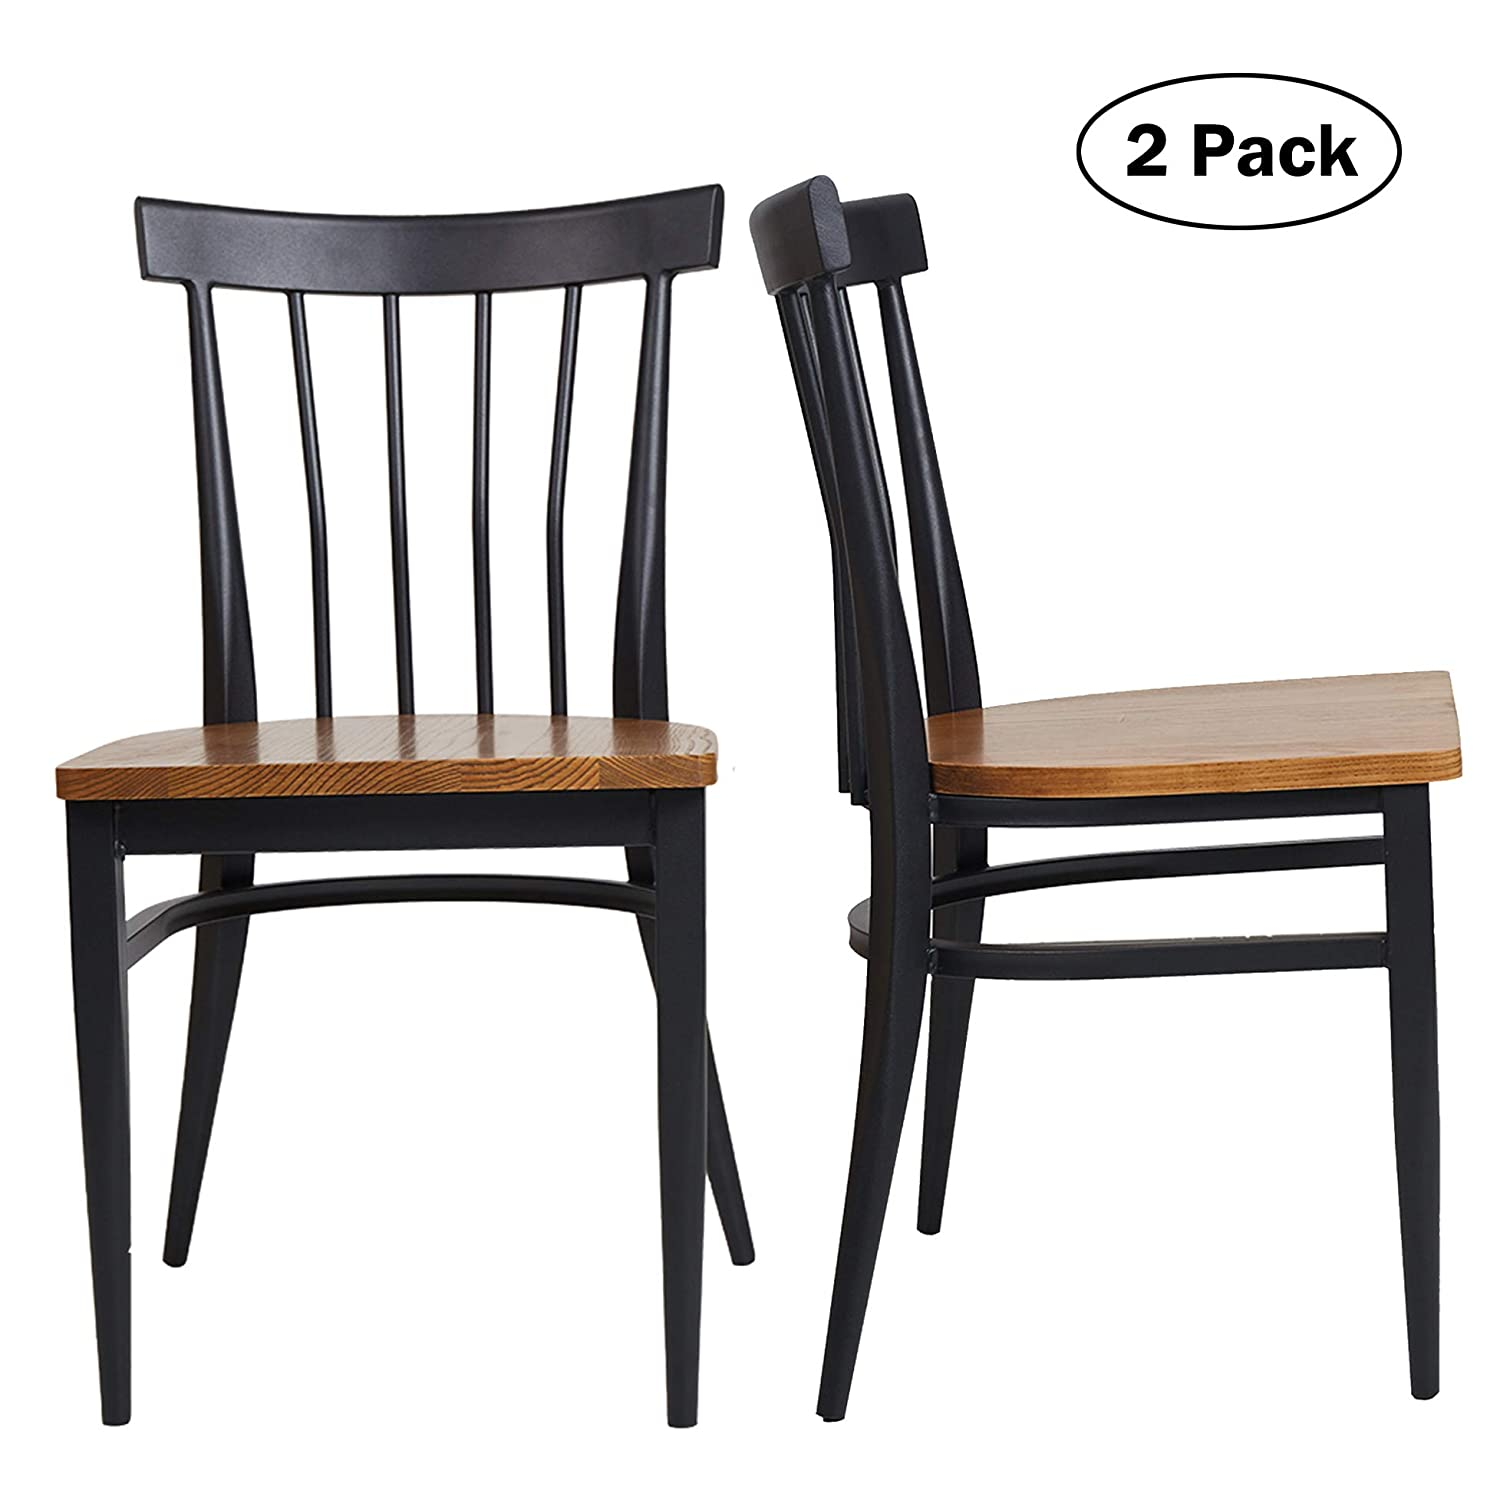 Set of 2 dining side chairs natural wood seat and sturdy iron frame simple kitchen restaurant chairs for dining room cafe bistro ergonomic designcomb